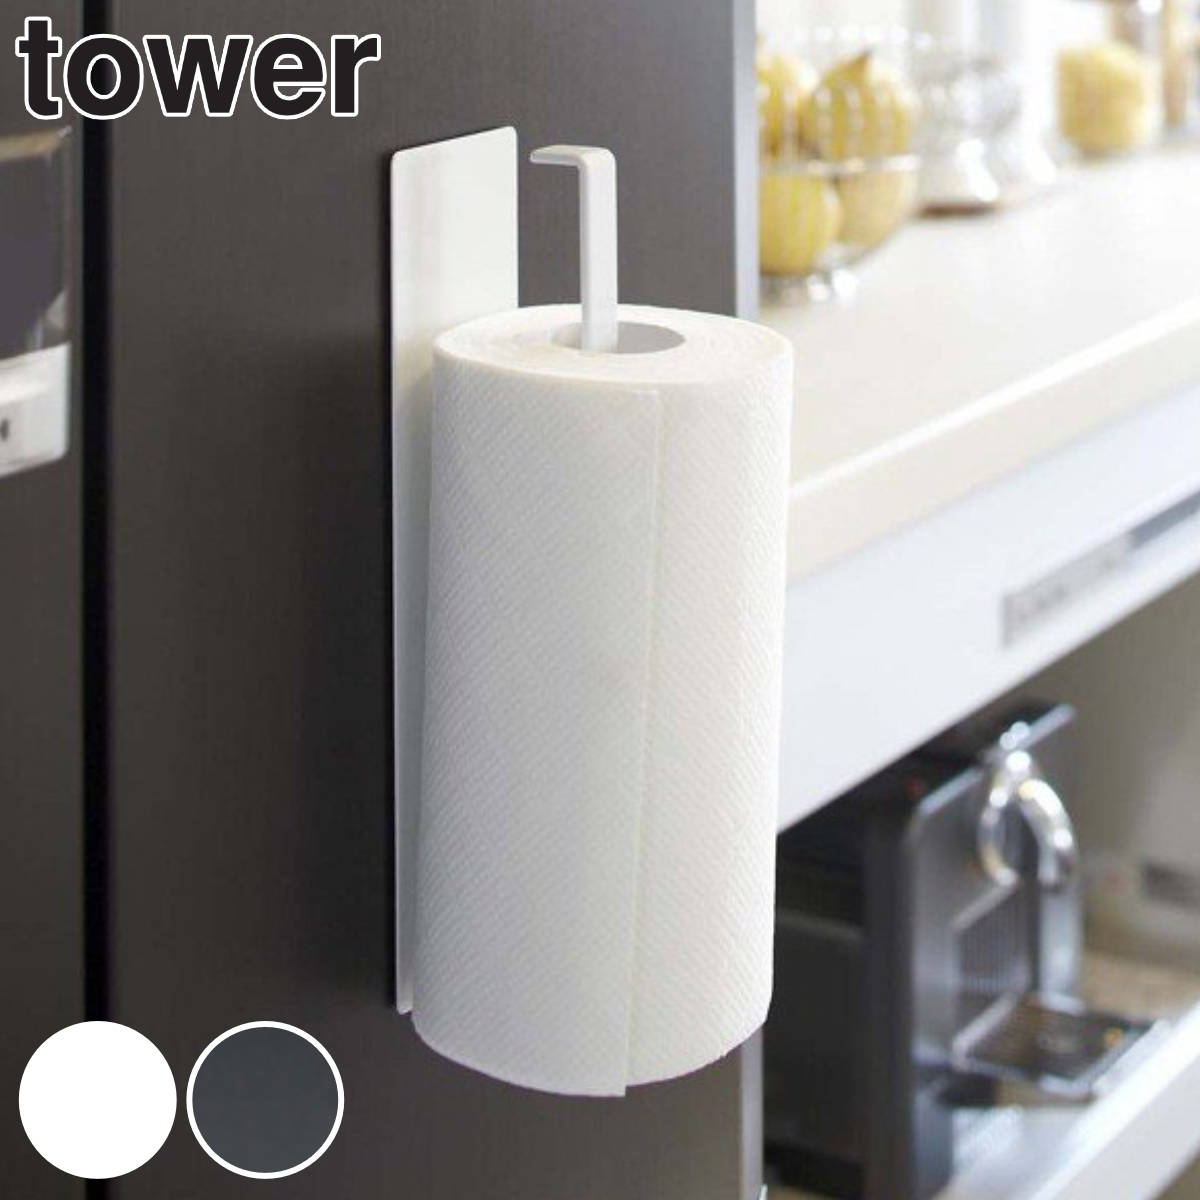 Genial Livingut: Magnet Kitchen Roll Holder Tower Tower (paper ...